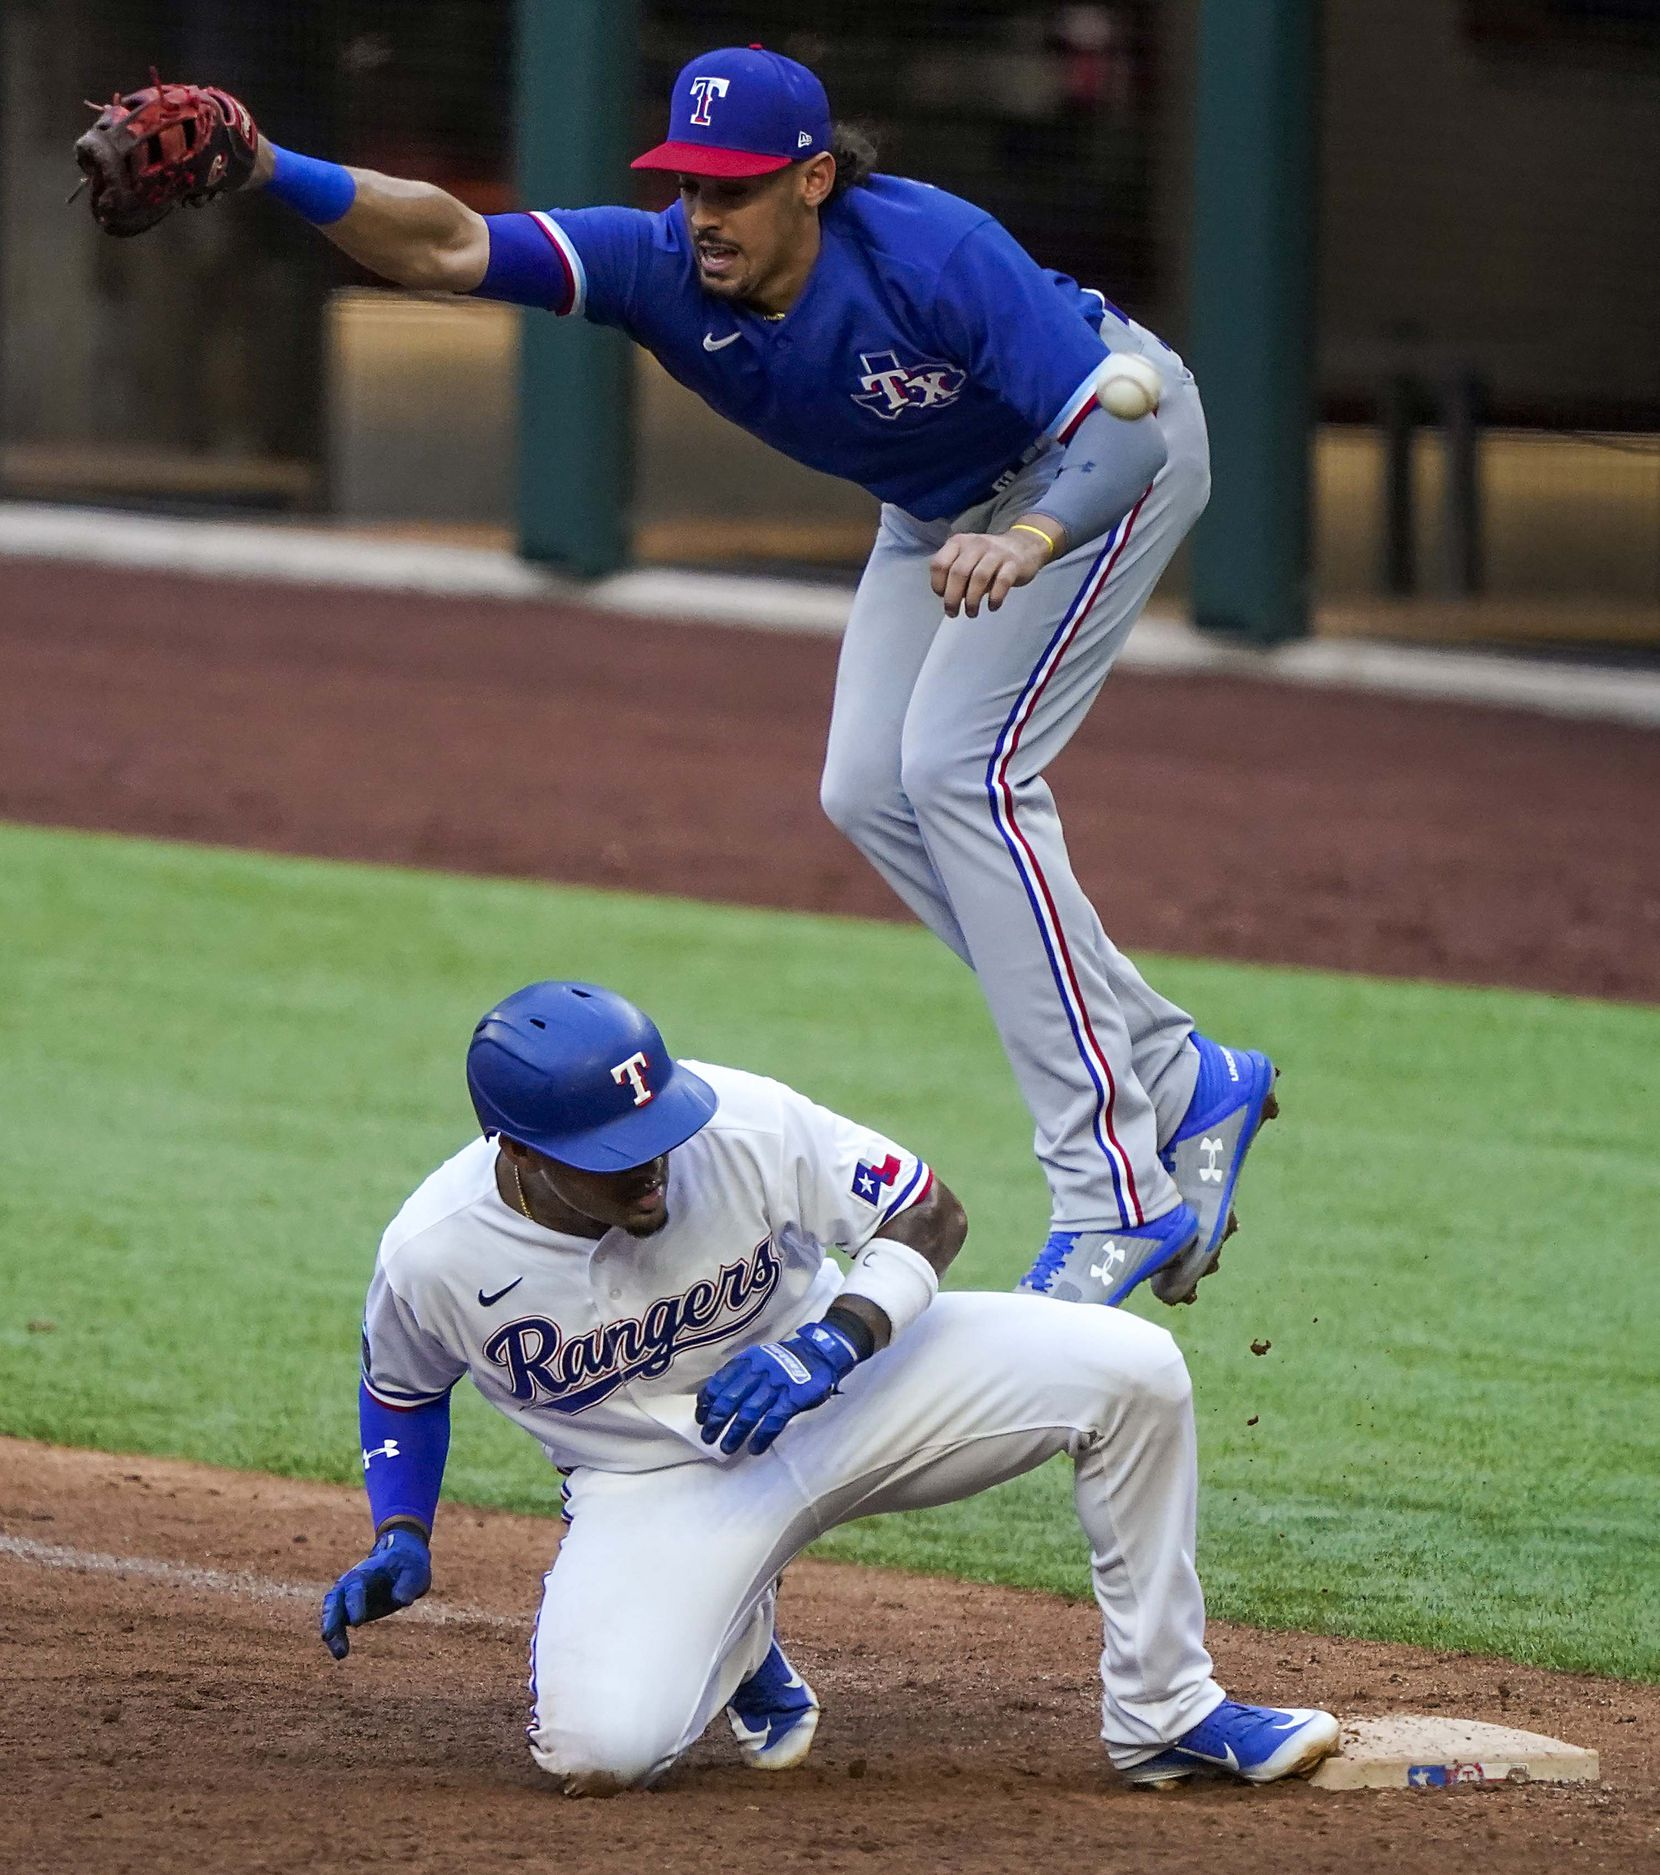 Infielder Andy Ibanez gets back to the base as the throw from right field gets away from first baseman Ronald Guzman on an attempt to double off Ibanez on a fly ball in an intrasquad game during Texas Rangers Summer Camp at Globe Life Field on Friday, July 17, 2020.